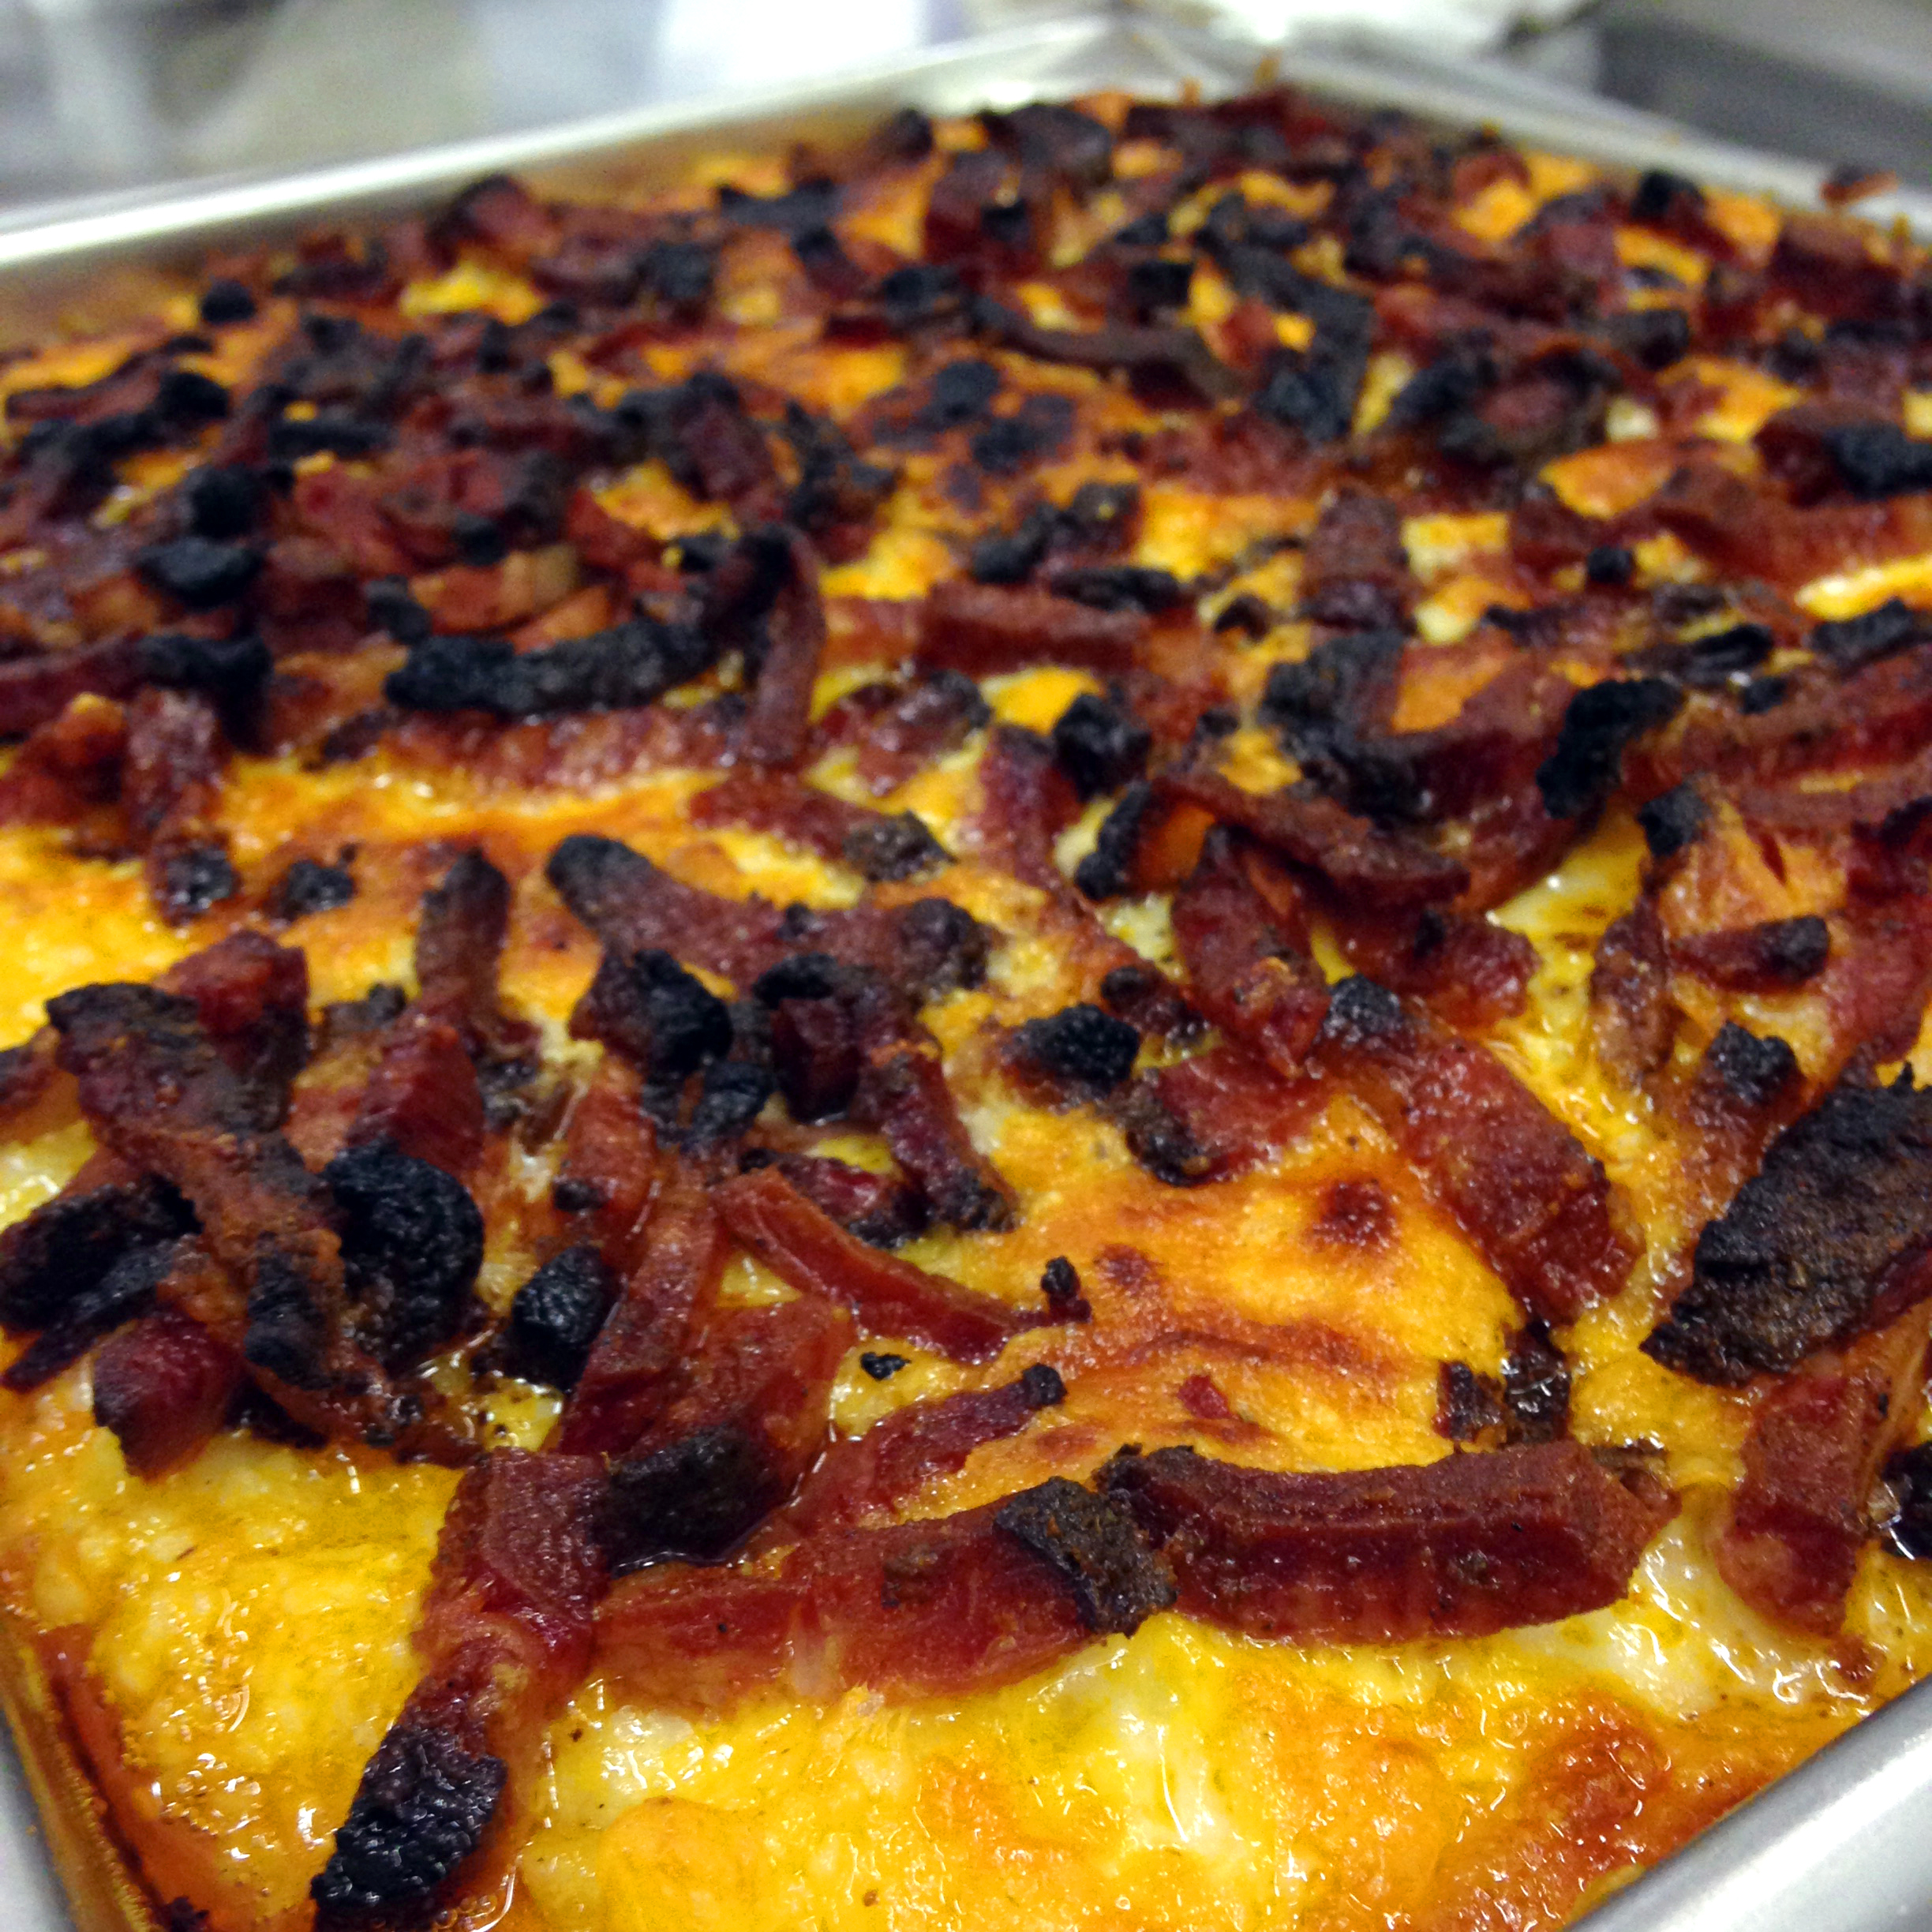 Anson Mills grits were topped with yellow and smoked cheddar, Tasso ham, and broiled 'till bubbly